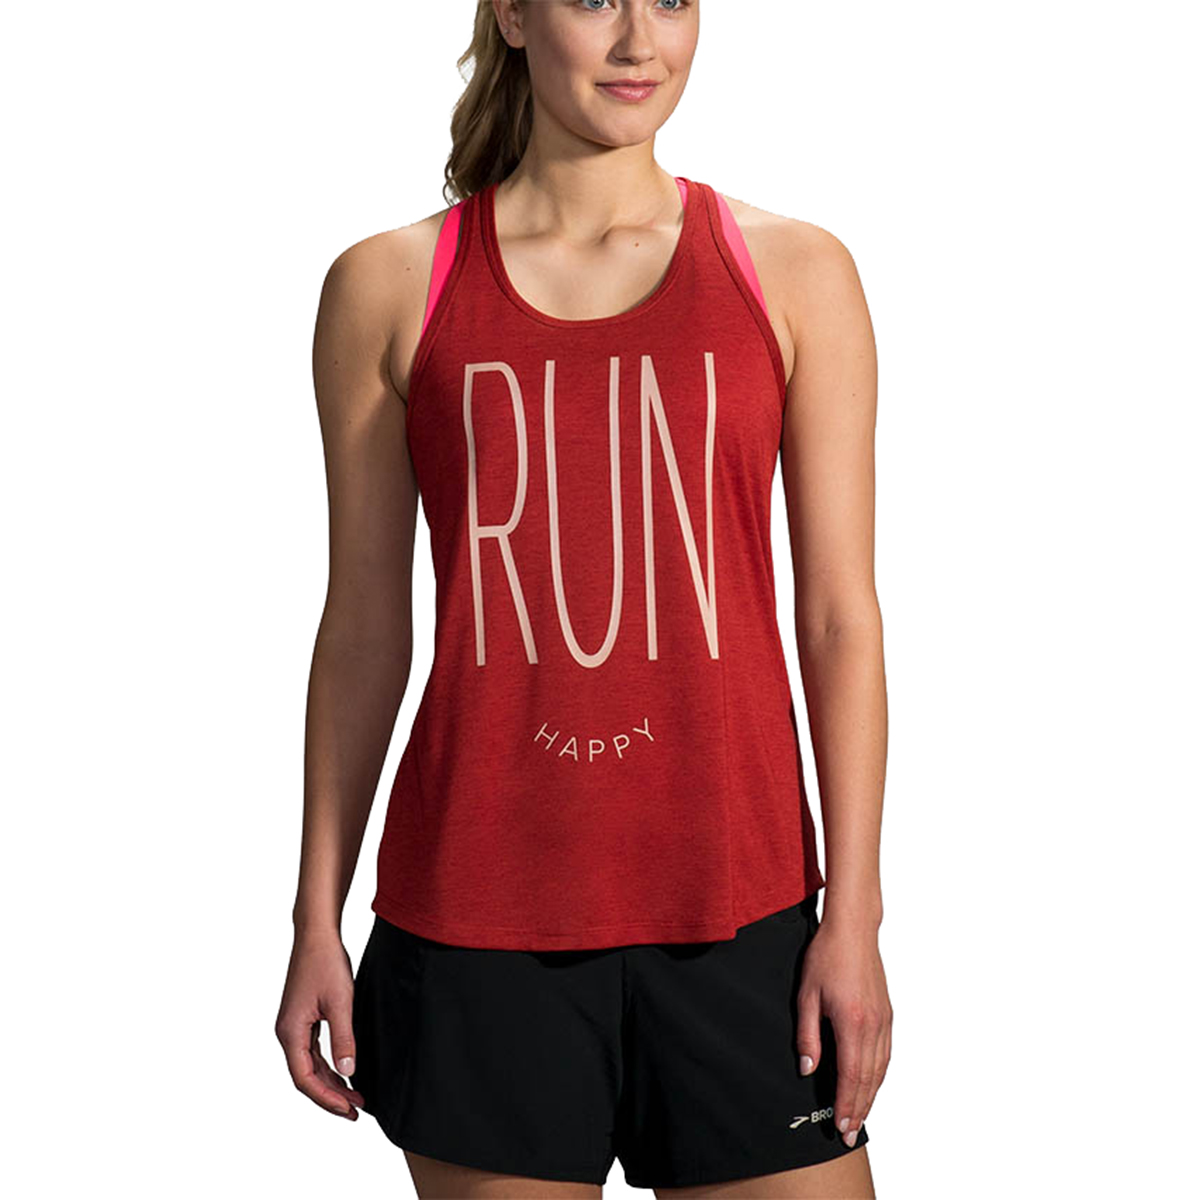 Women's Brooks Distance Graphic Tank  - Color: Heather Rosewood/Run Happy - Size: L, Heather Rosewood/Run Happy, large, image 1